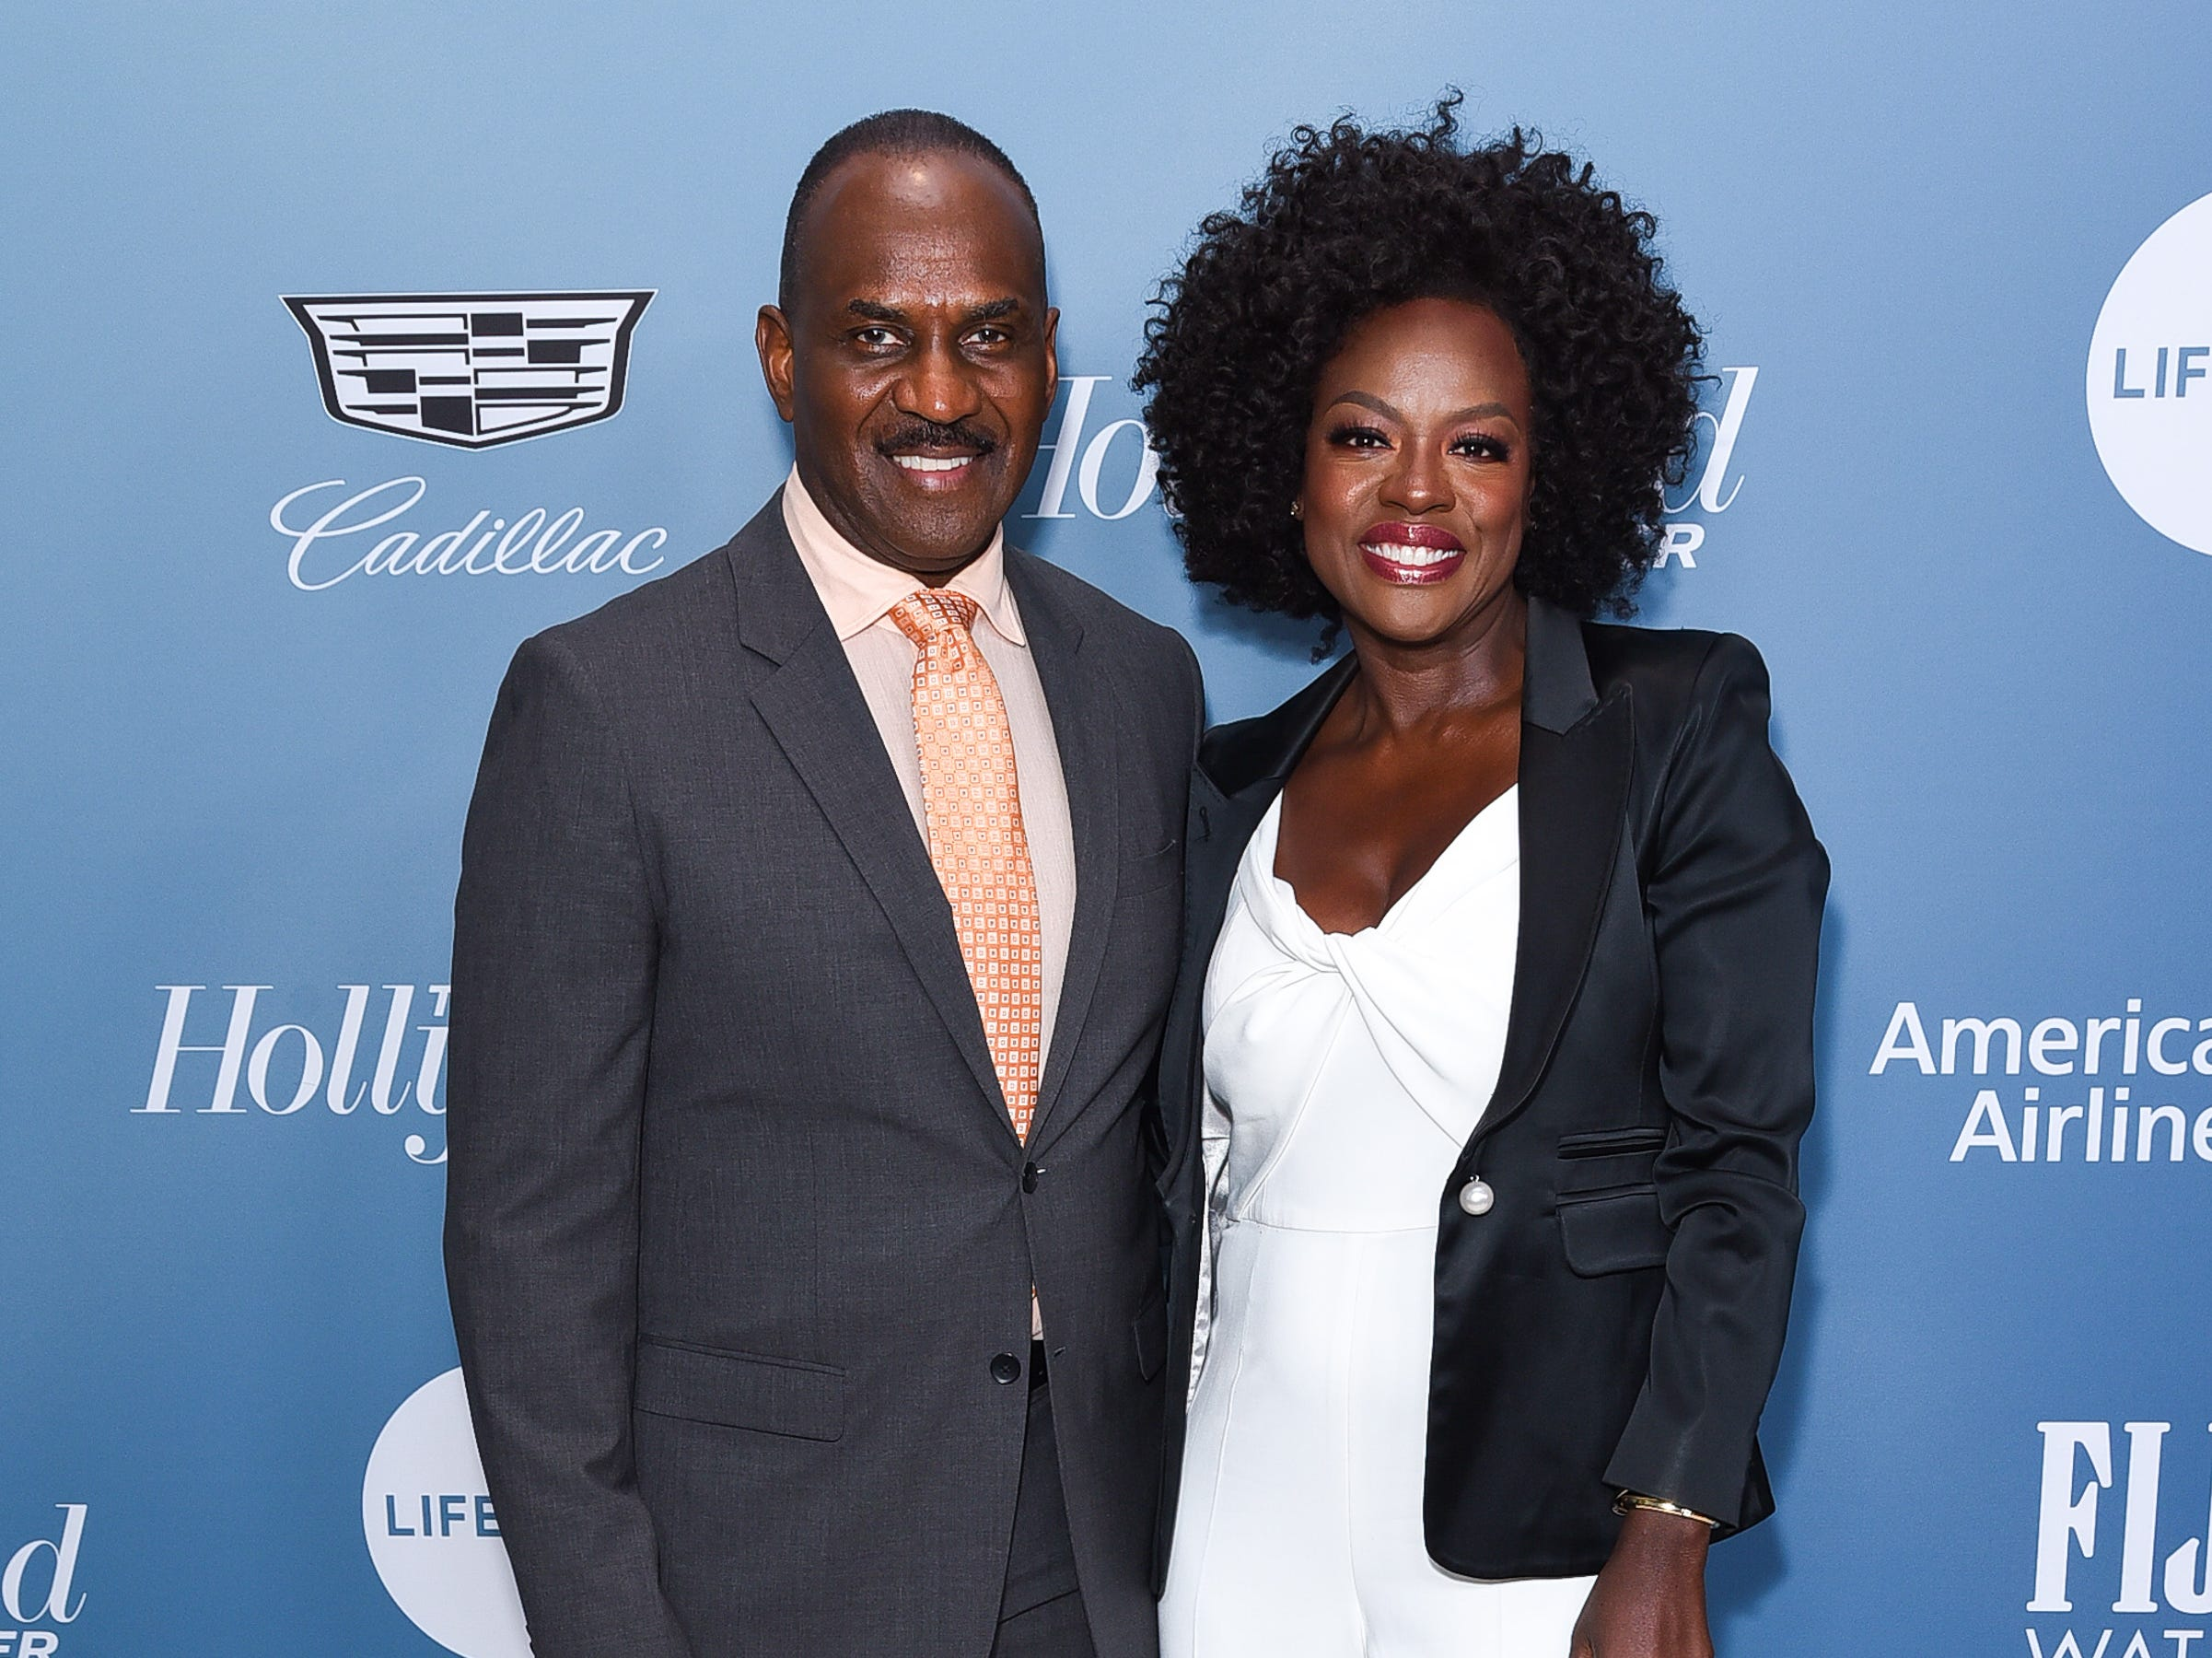 LOS ANGELES, CALIFORNIA - DECEMBER 05: Julius Tennon and Viola Davis attend The Hollywood Reporter's Power 100 Women In Entertainment at Milk Studios on December 05, 2018 in Los Angeles, California. (Photo by Presley Ann/Getty Images) ORG XMIT: 775264723 ORIG FILE ID: 1077830744